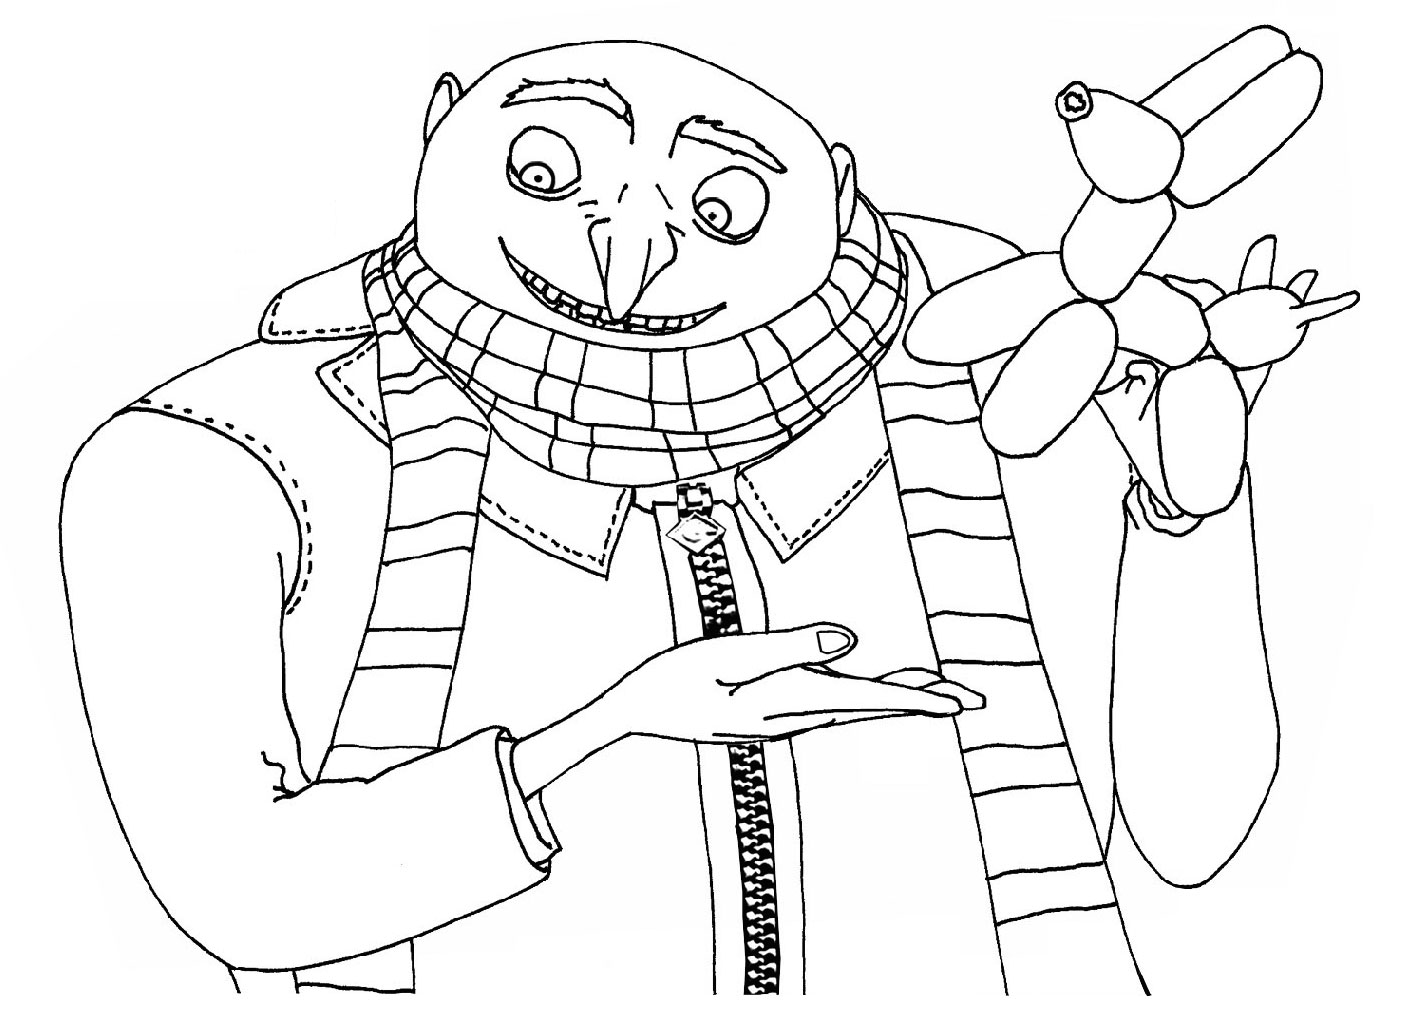 1416x1011 Gru Despicable Me Coloring Pages